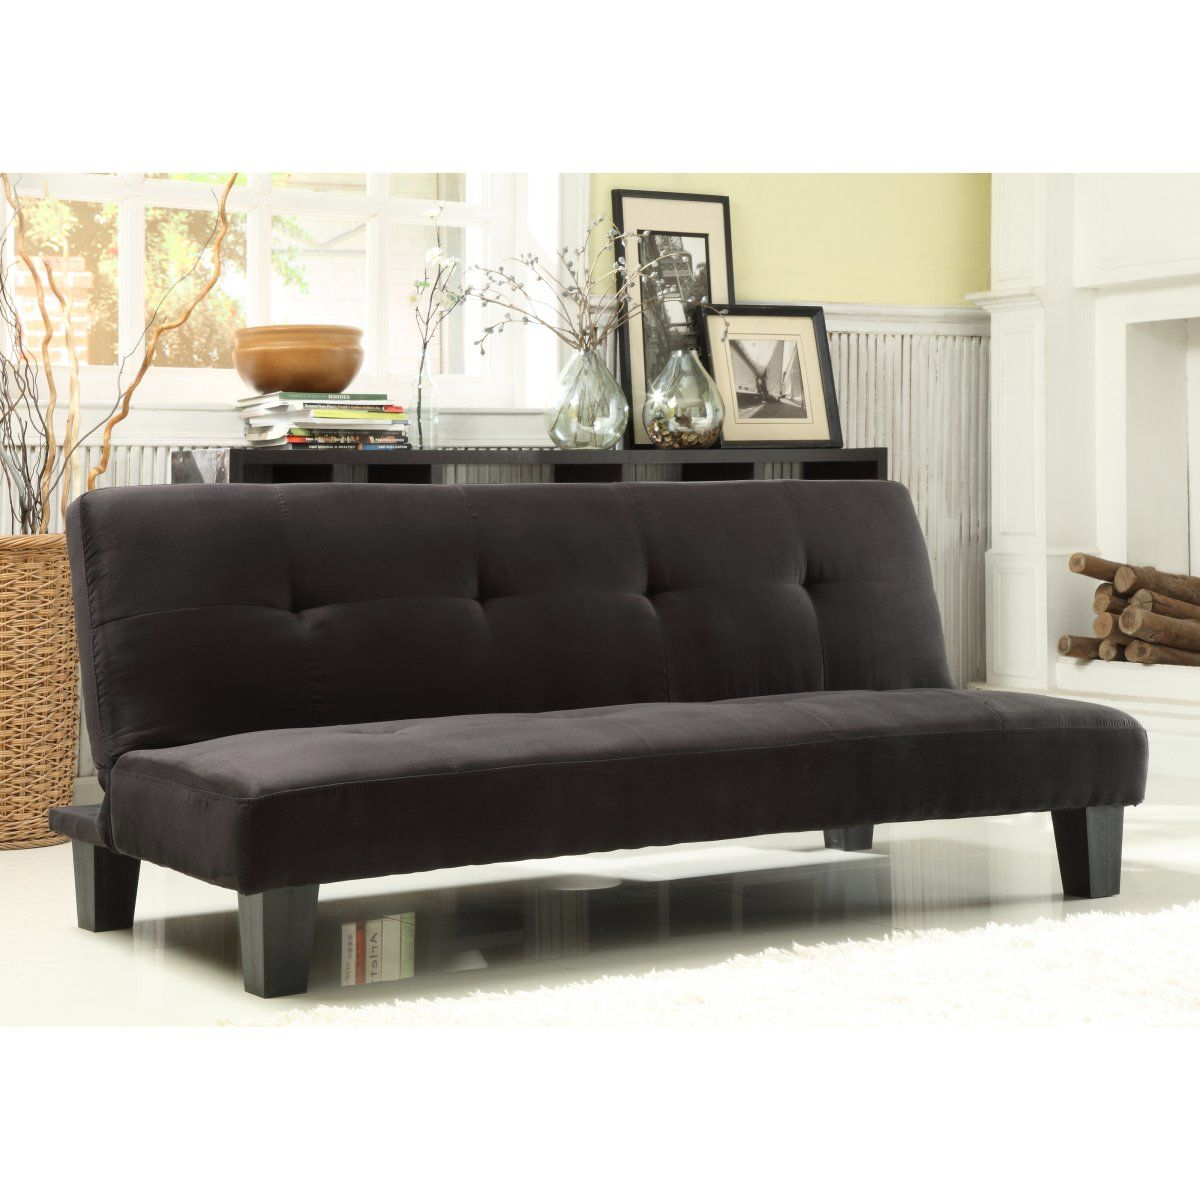 unique room & board sofa design-Contemporary Room & Board sofa Online